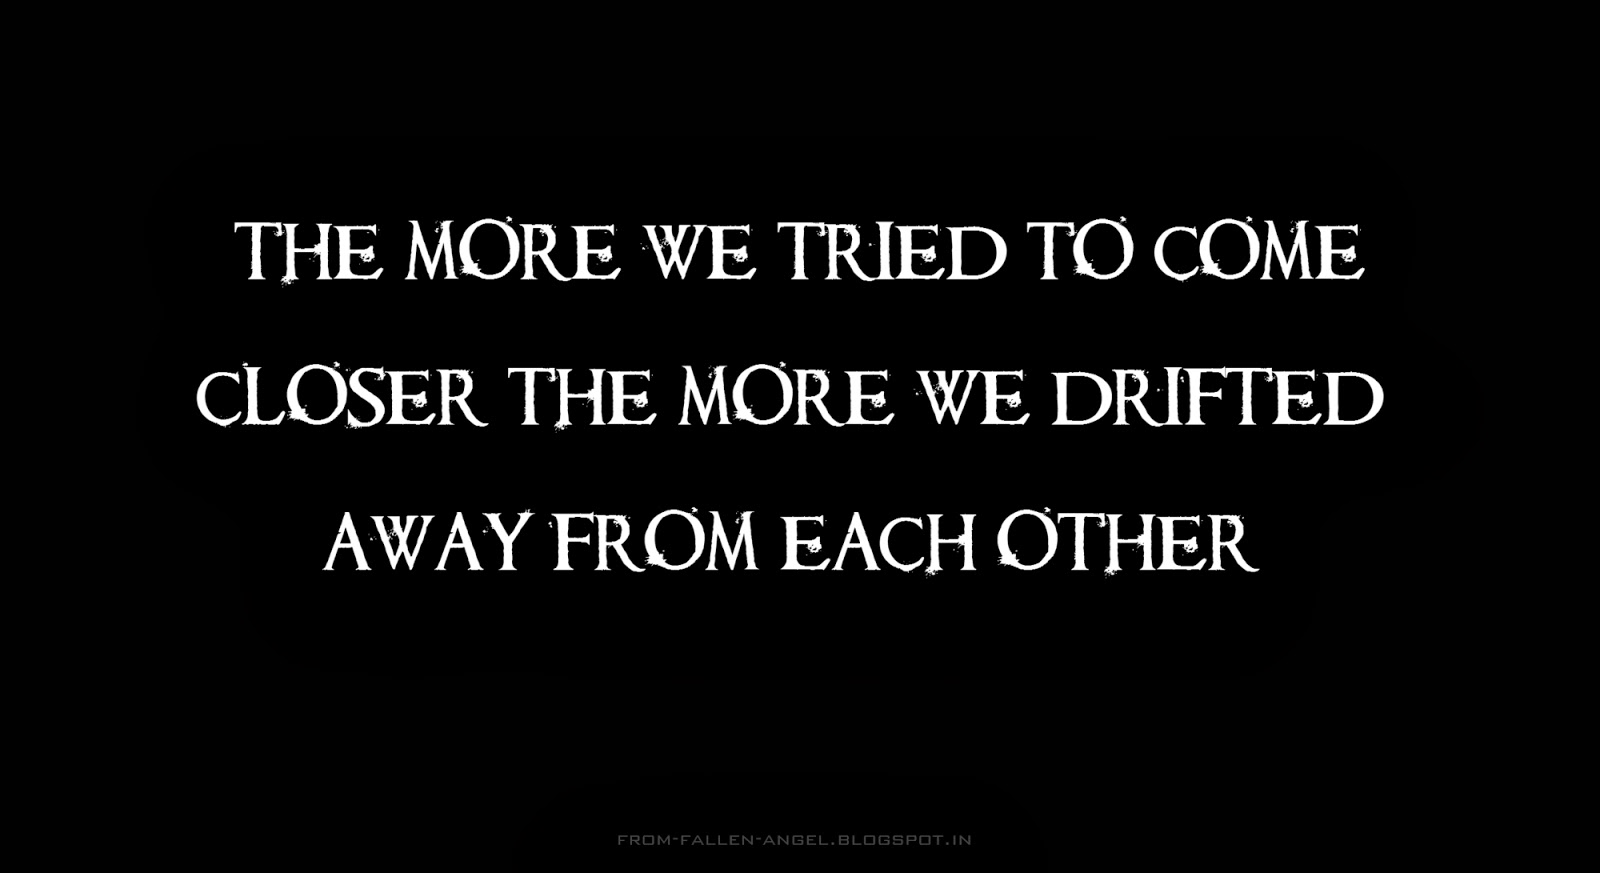 The more we tried to come closer the more we drifted away from each other